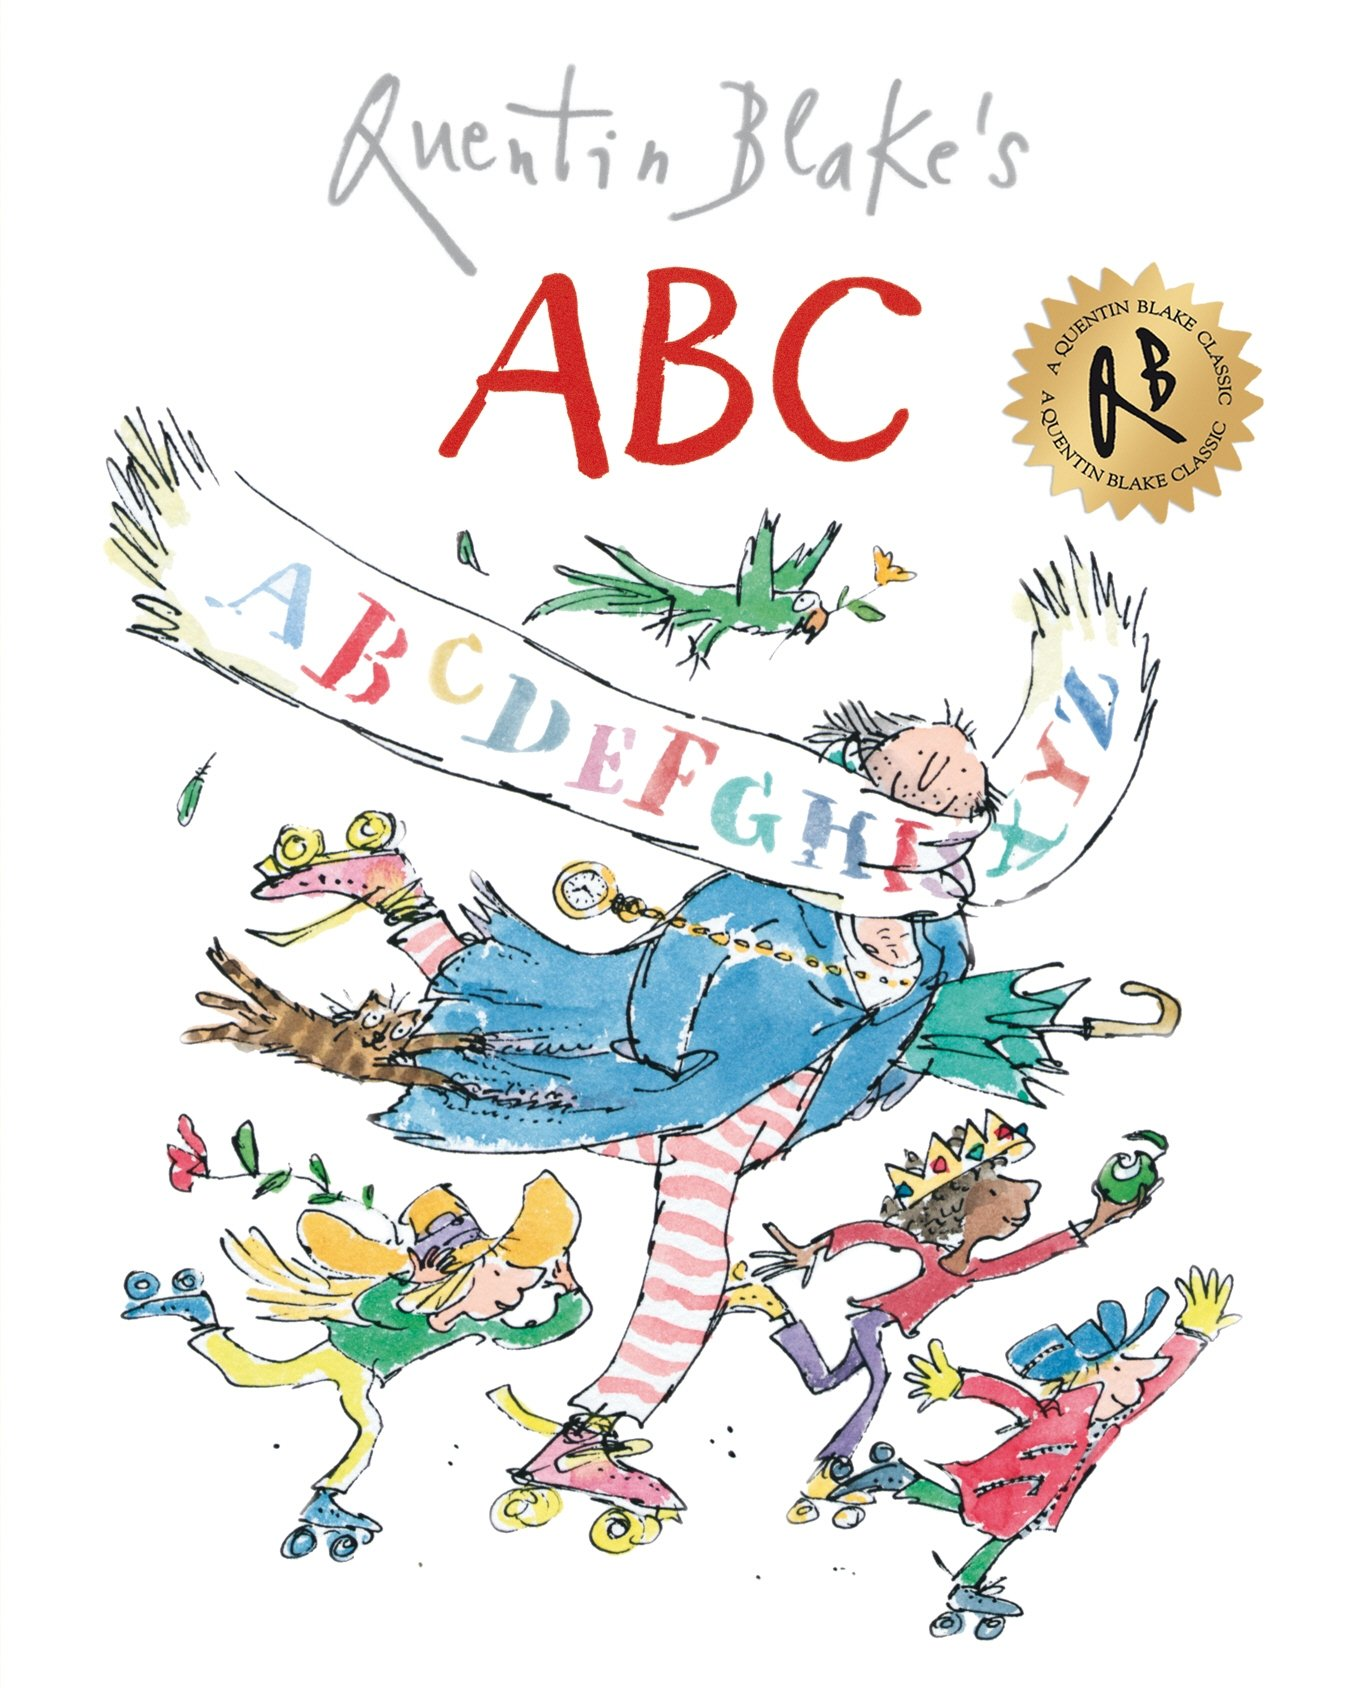 Quentin Blake's ABC by imusti